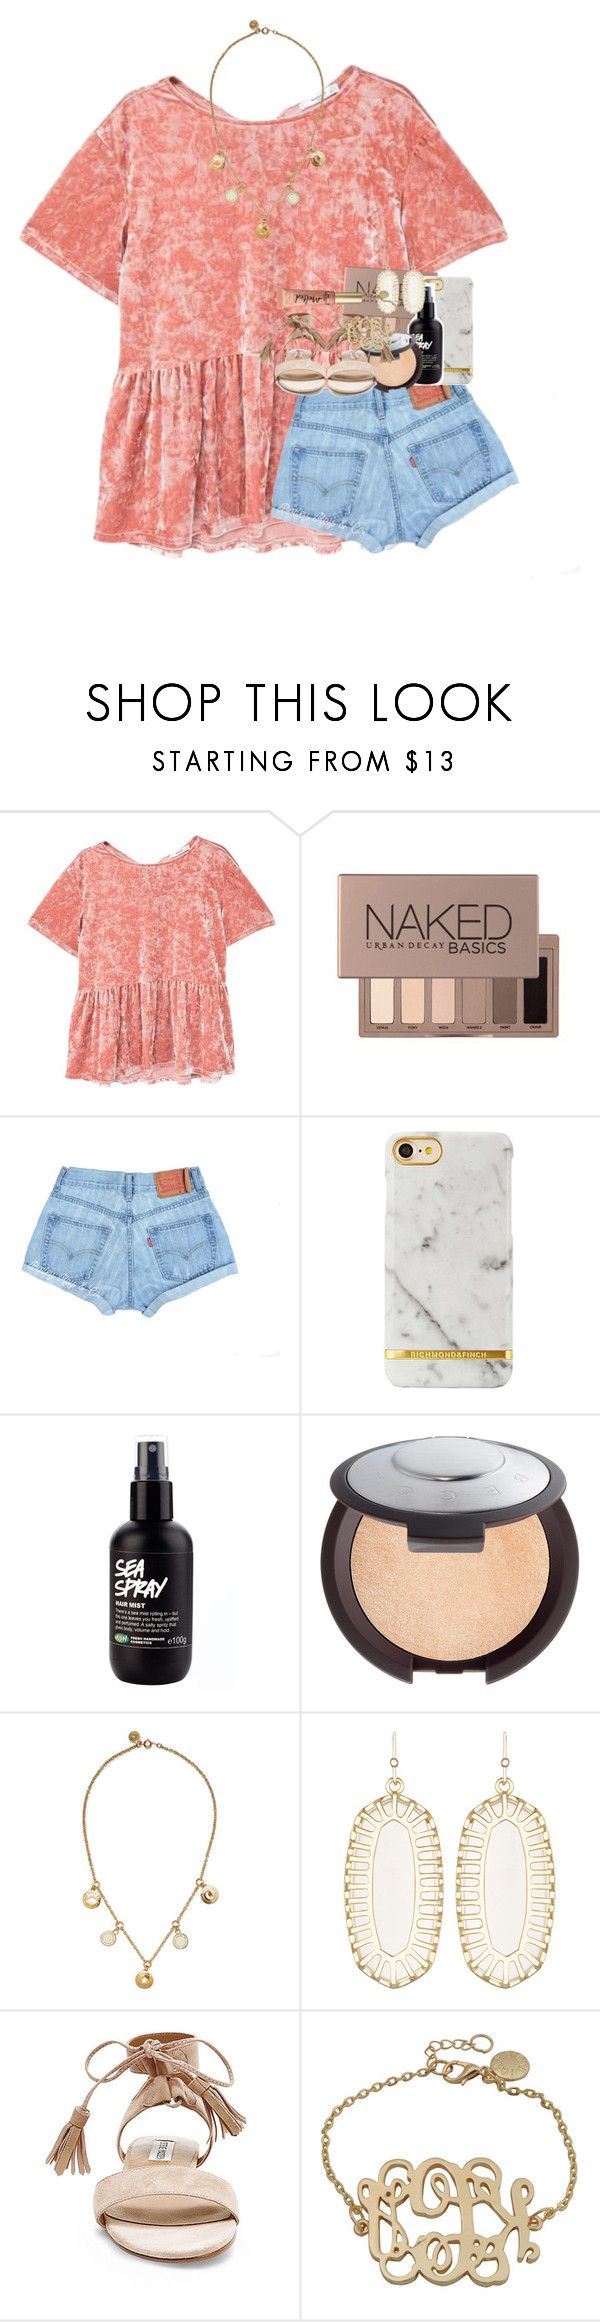 """she made her own hopes & dreams come true and didn't rely on anyone else to save her."" by ellaswiftie13 on Polyvore featuring MANGO, Urban Decay, Becca, Marc by Marc Jacobs, Kendra Scott, Steve Madden and Too Faced Cosmetics"